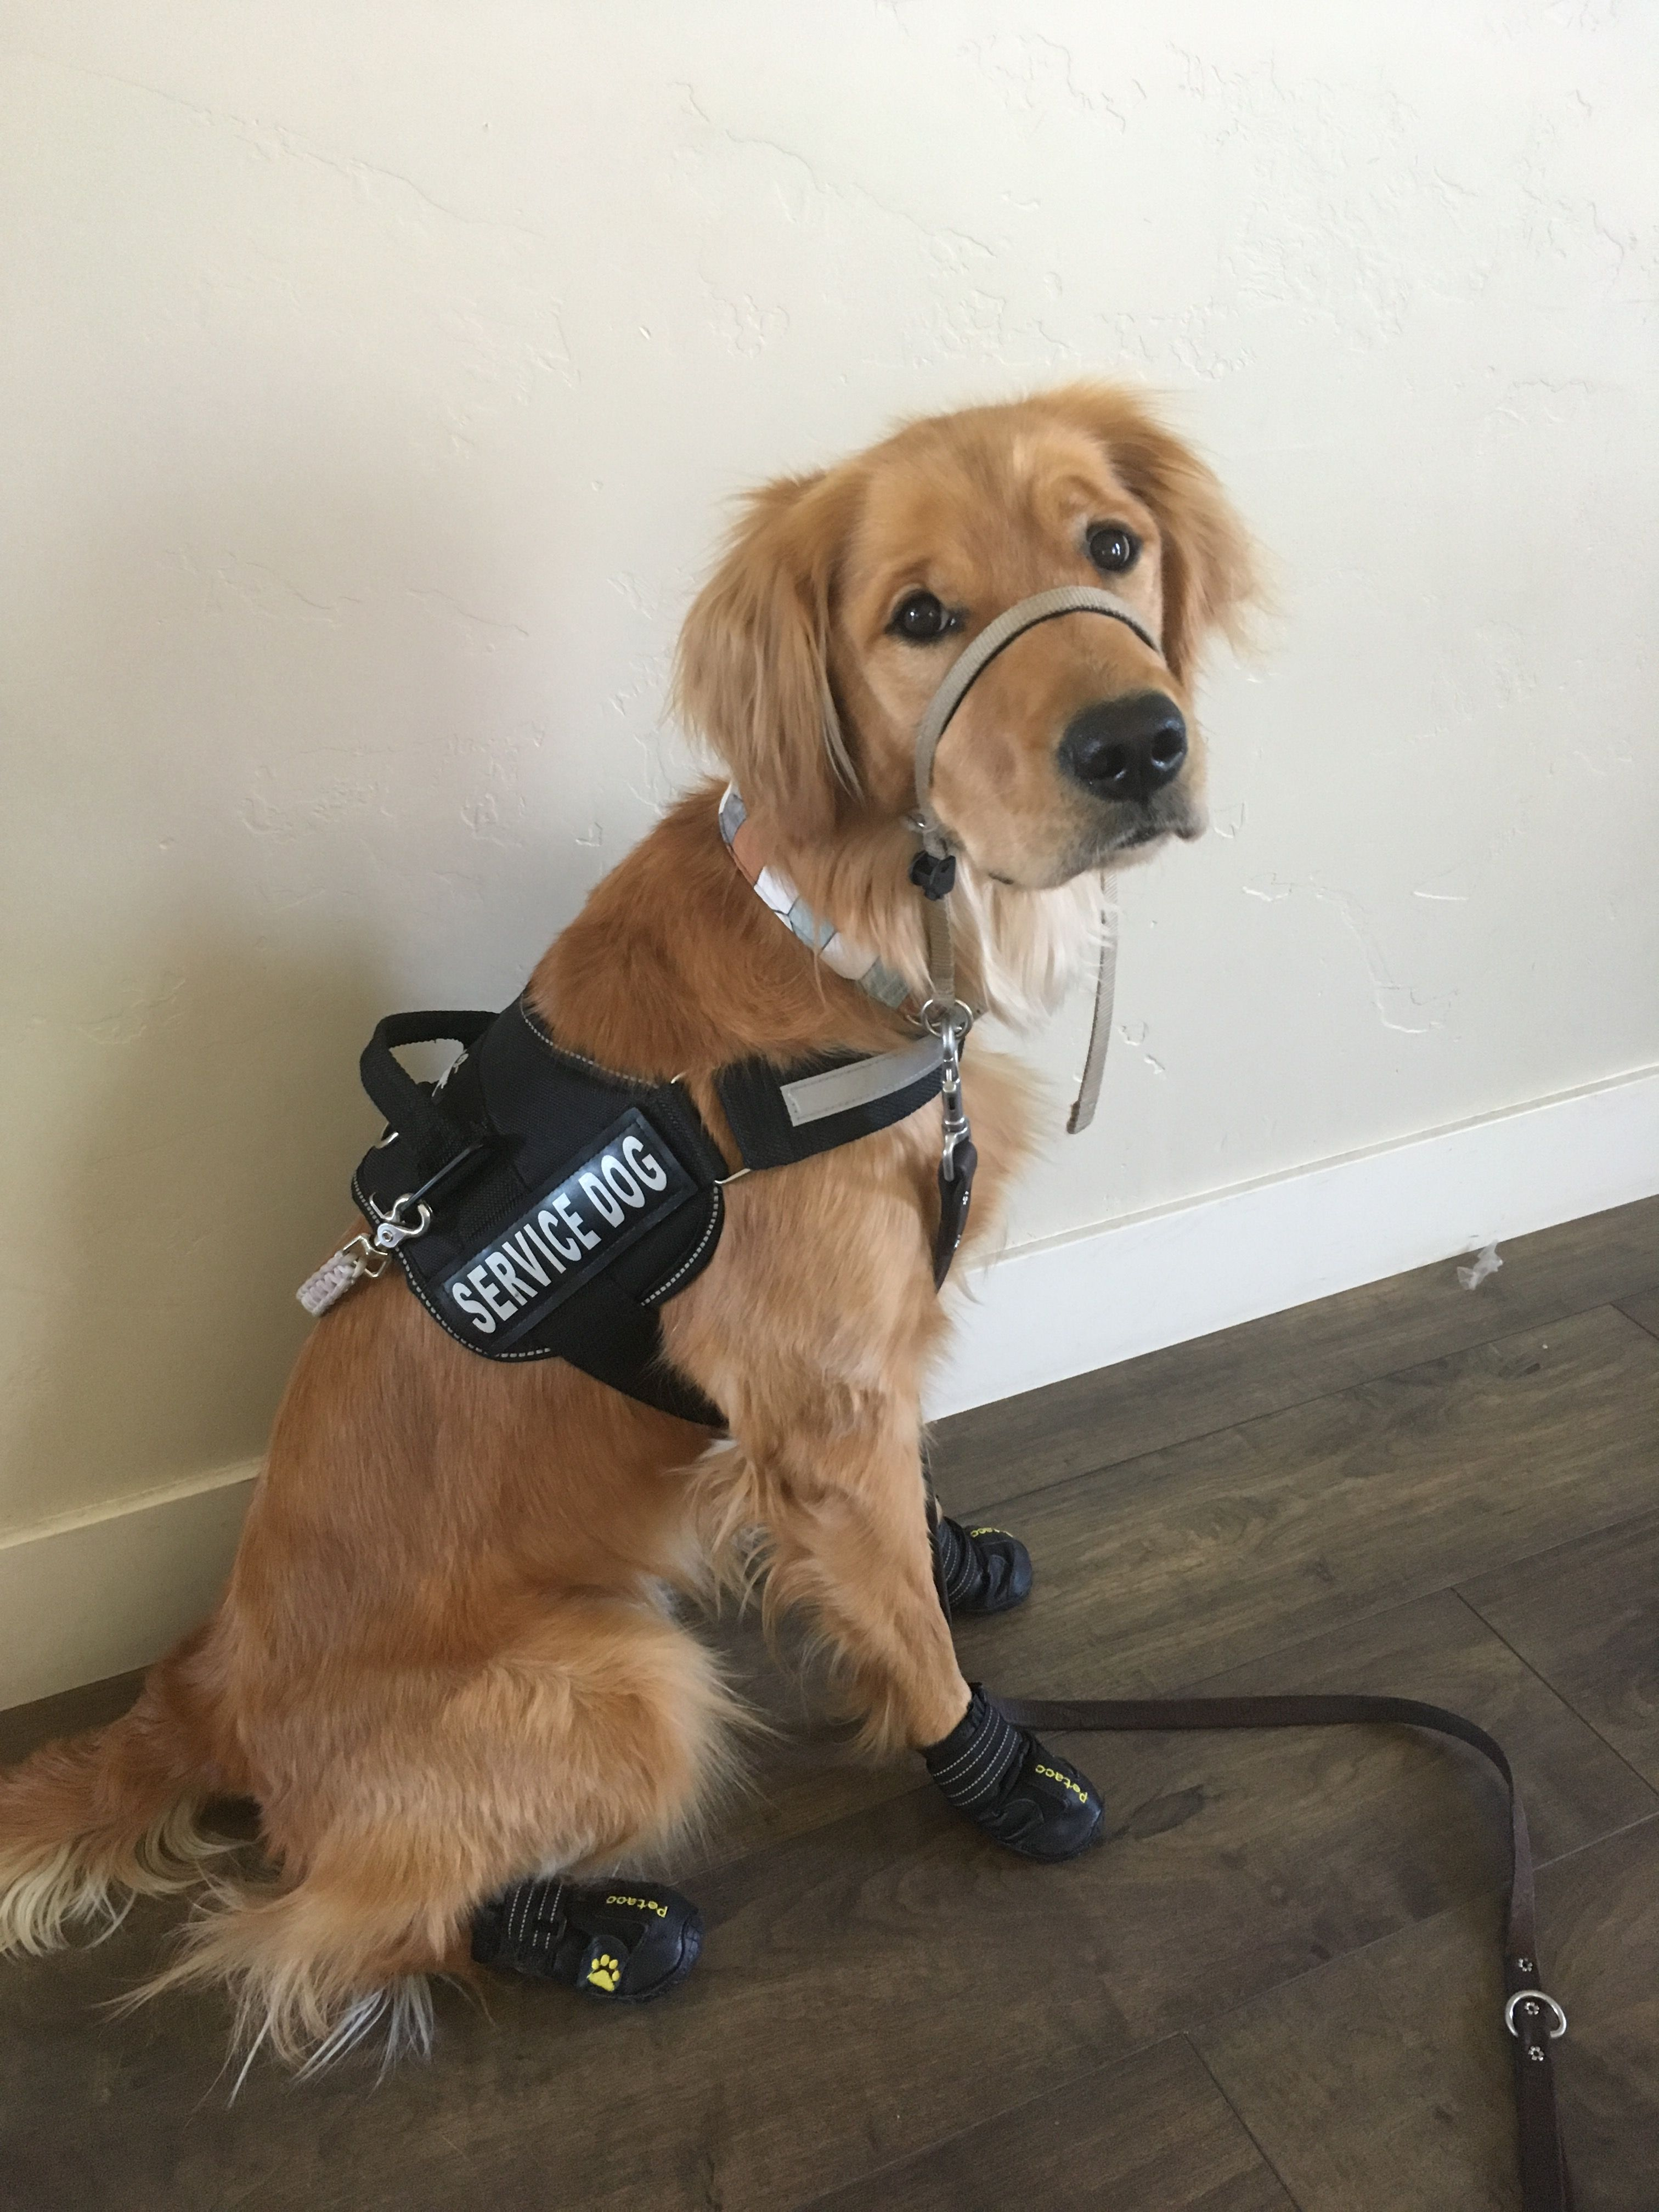 He knows he's handsome! Golden retriever service dog